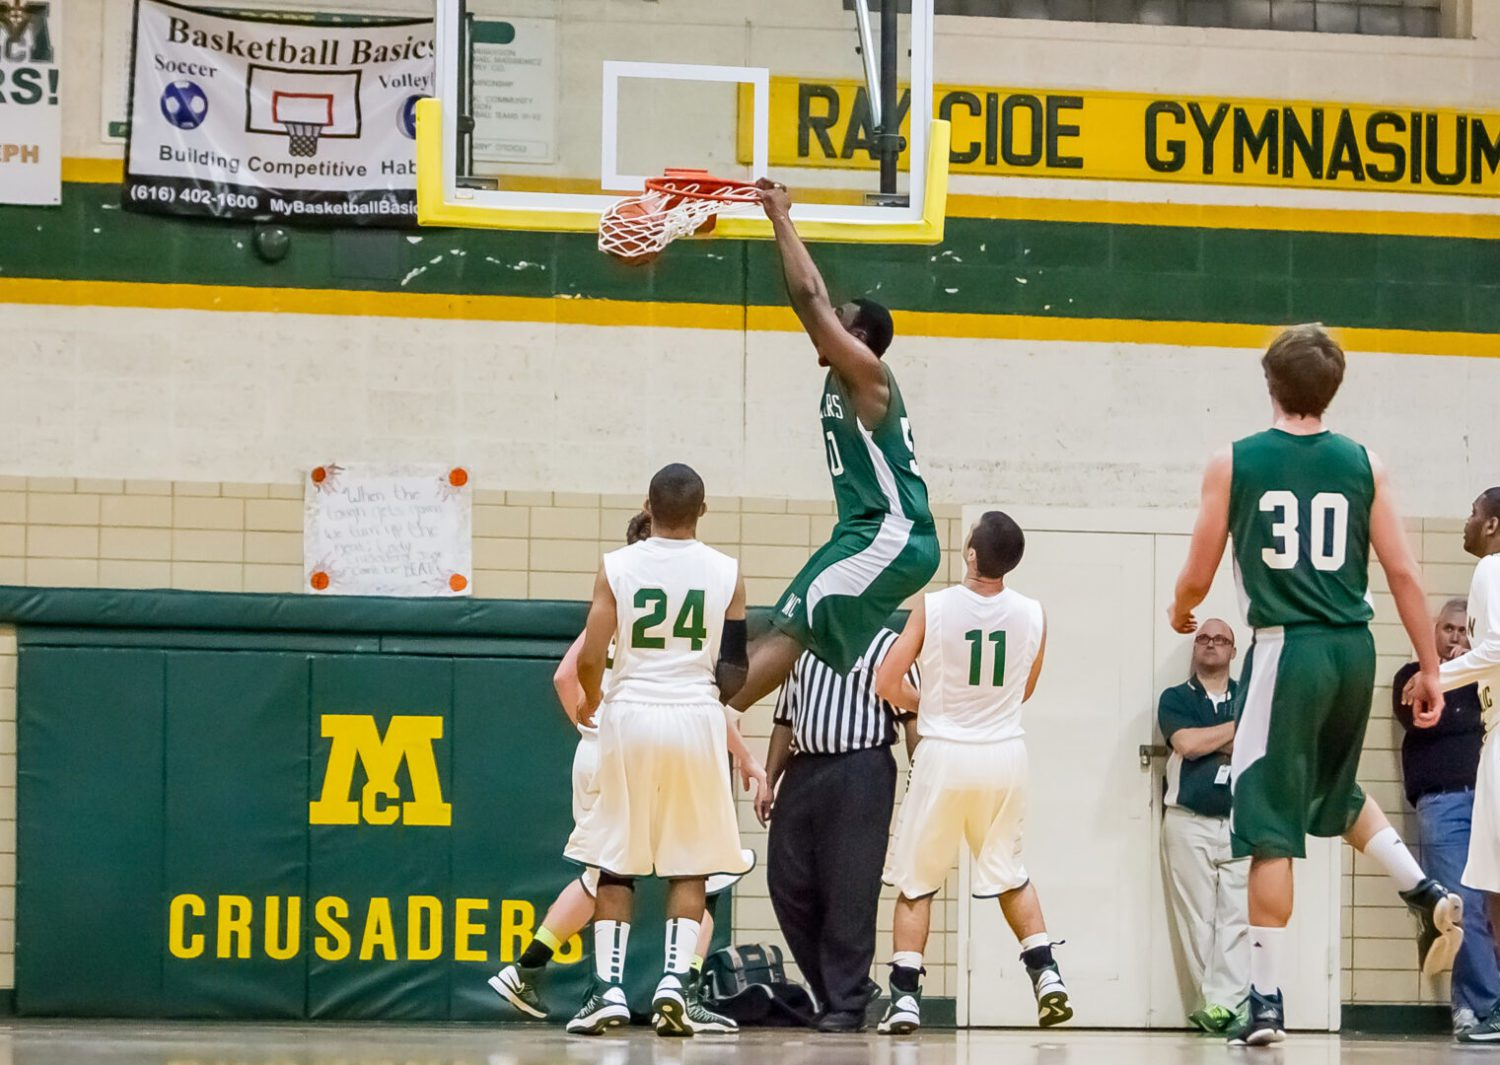 LSJ Summer 13: Day 2 arrives with Muskegon Catholic football action, North Muskegon dunk shots and a radio shout out